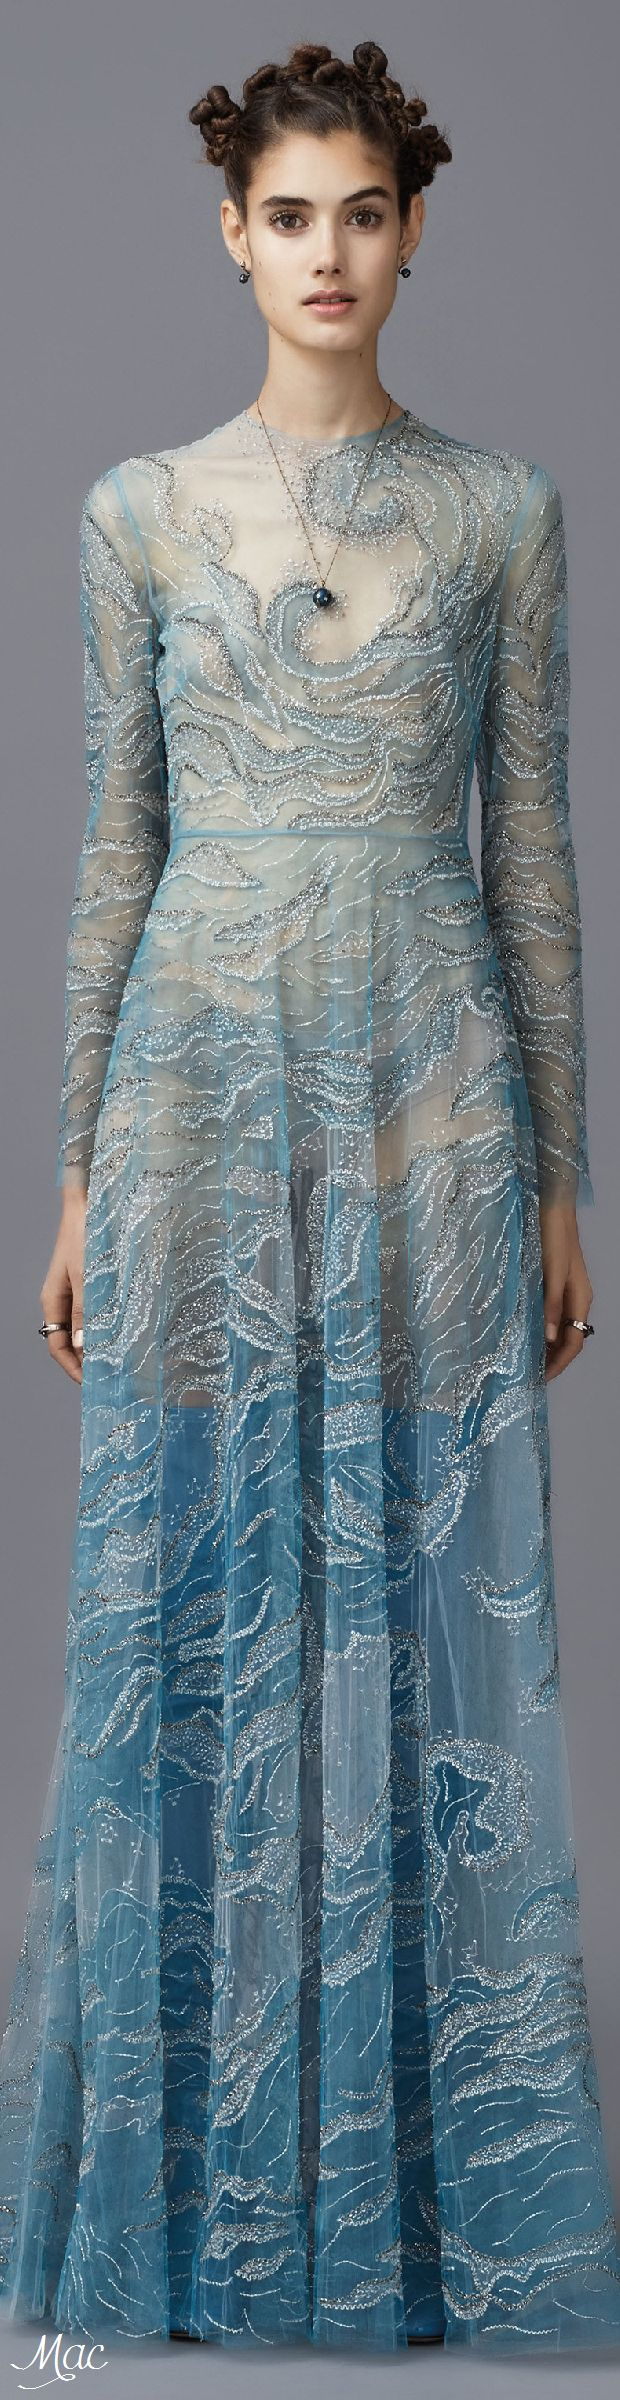 484 best Hijab haute couture images on Pinterest | Party fashion ...